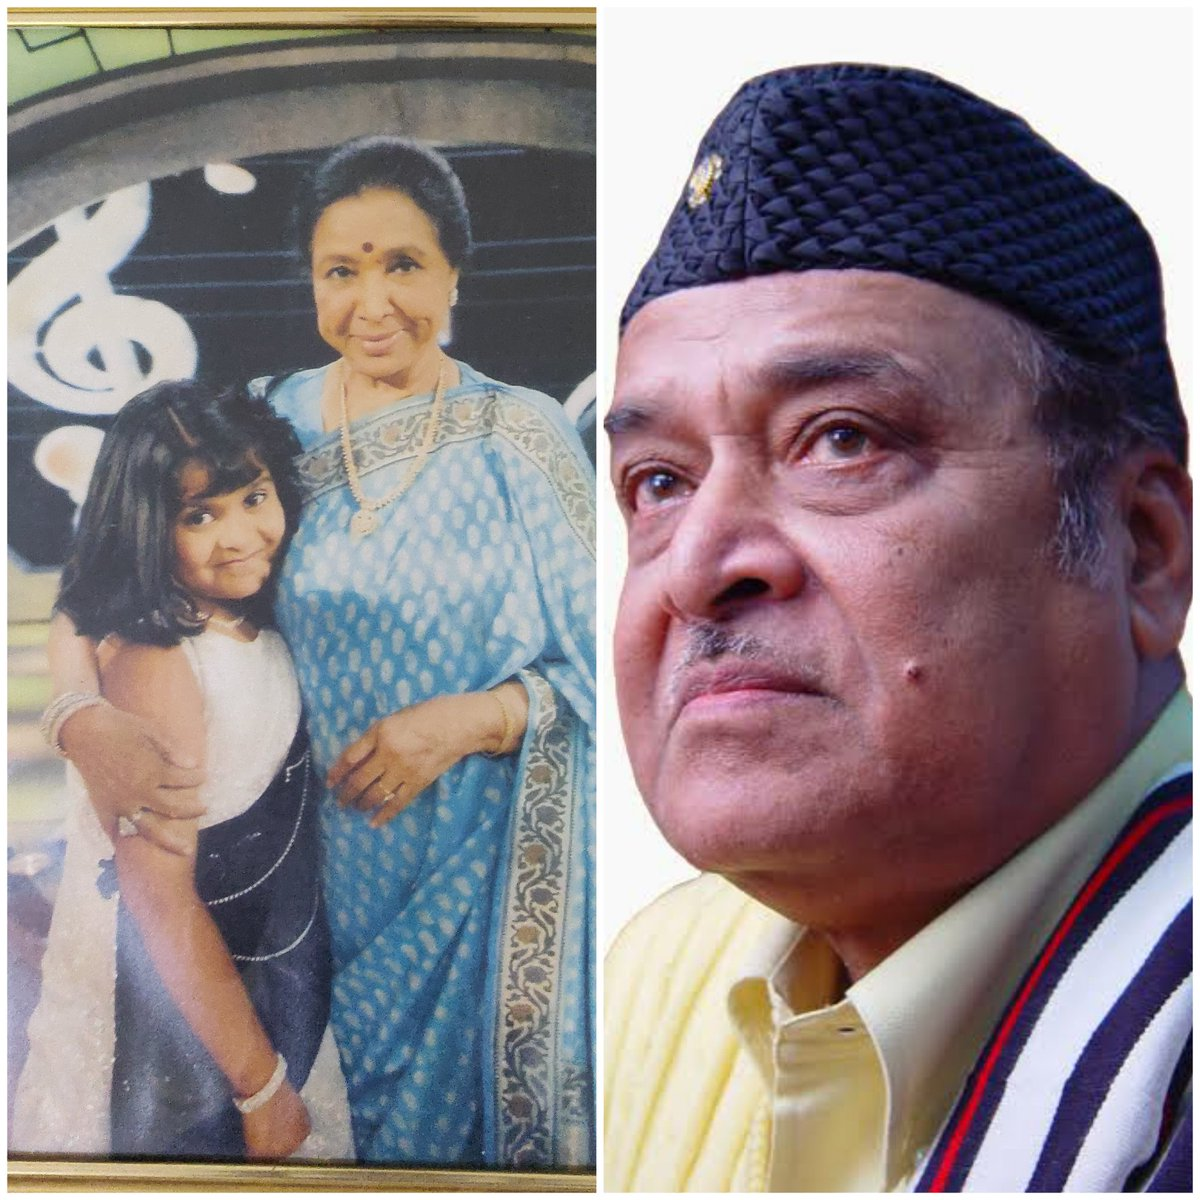 Two legends were born on this auspicious day. I consider myself blessed to have had the opportunity to meet and learn from Asha Tai. Although my dream of meeting Late Padmashree Bhupen Hazarika Daangoriya remained a dream. Wishing both the legends a very happy birthday ♥️